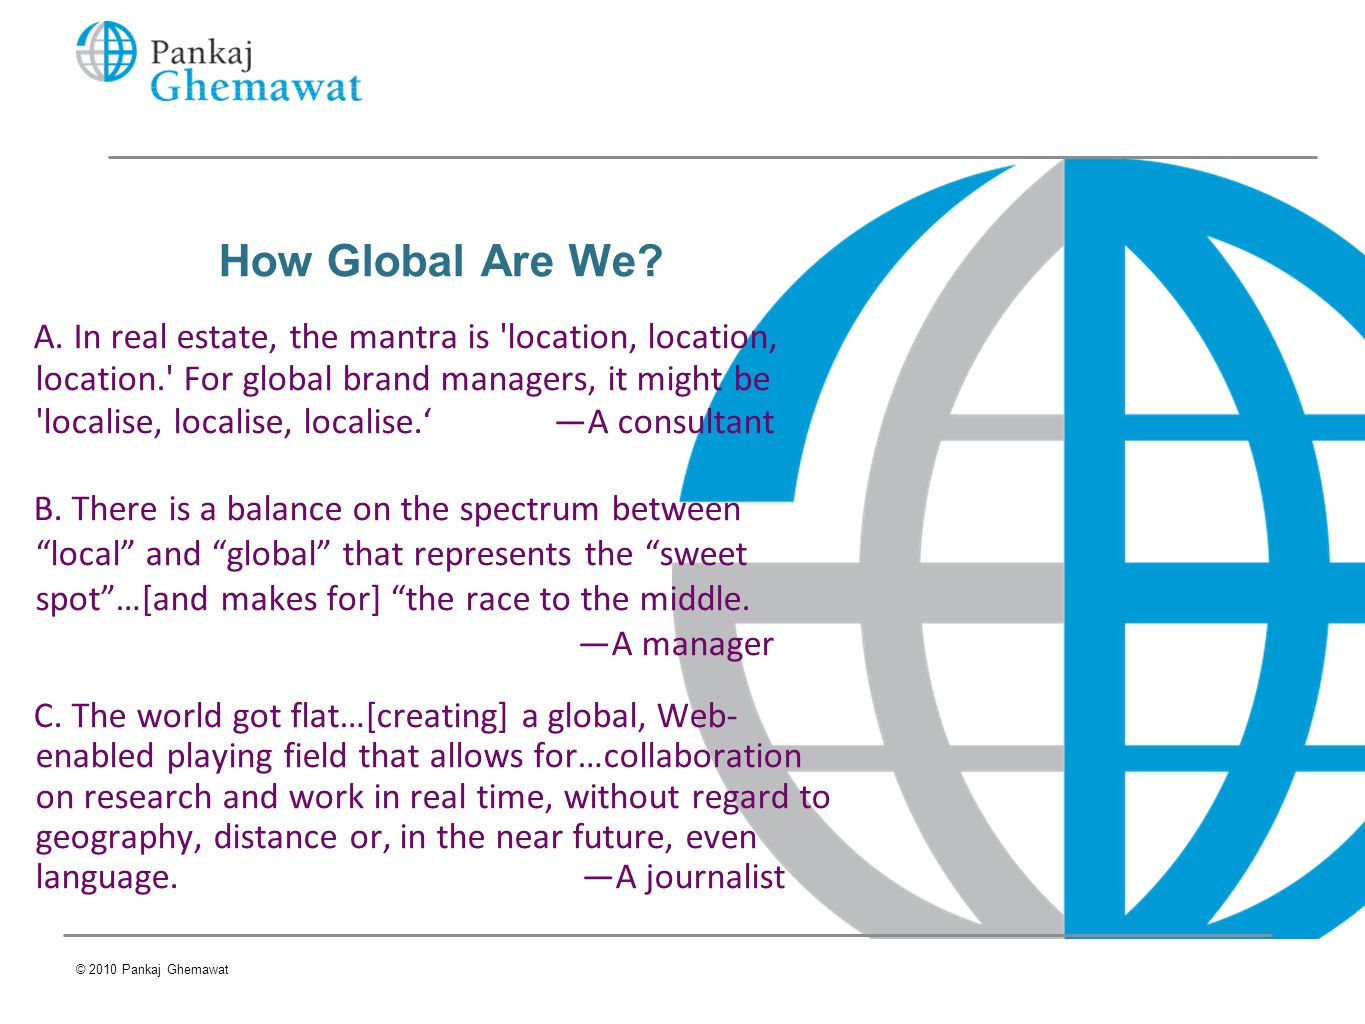 How Global Are We? A. In real estate, the mantra is 'location, location, location.' For global brand managers, it might be 'localise, localise, locali